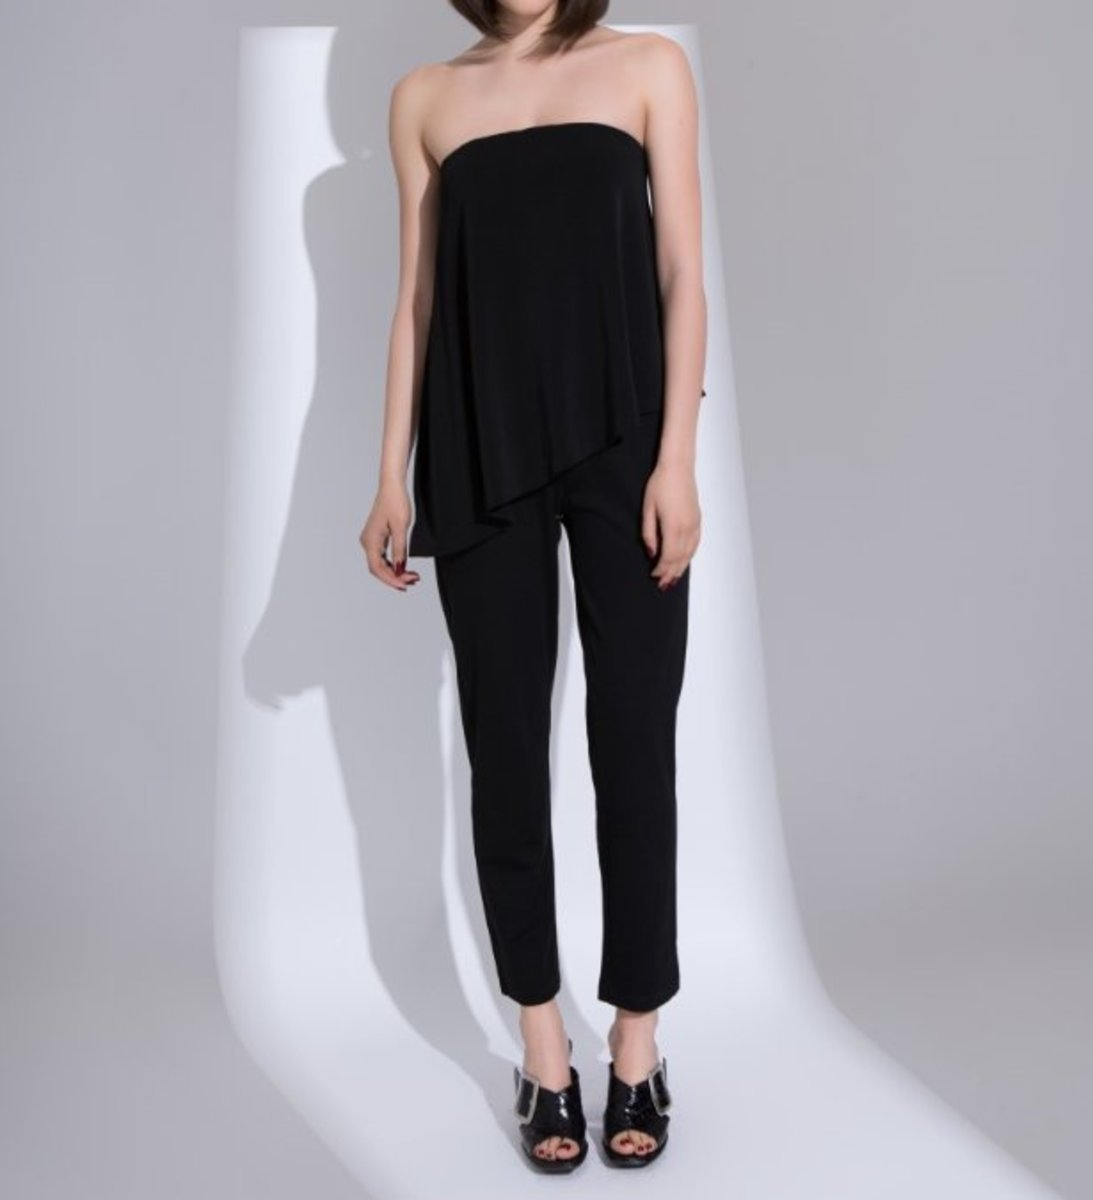 Women's Stretched Strapless Jumpsuit (Black)